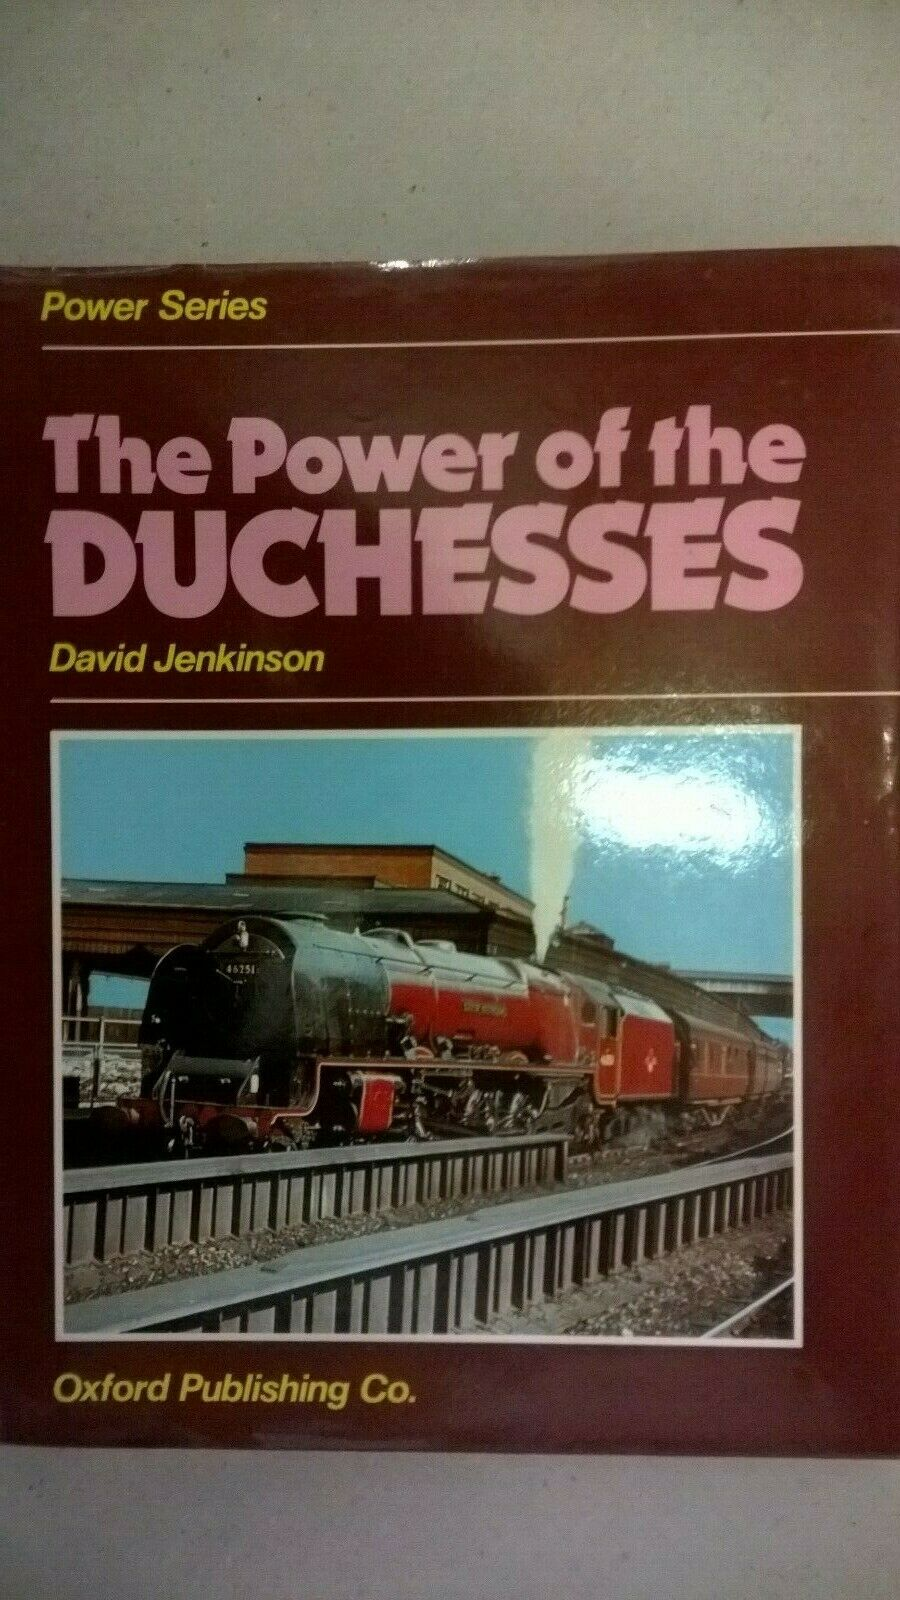 The Power of the Duchesses by David Jenkinson. Railway Book